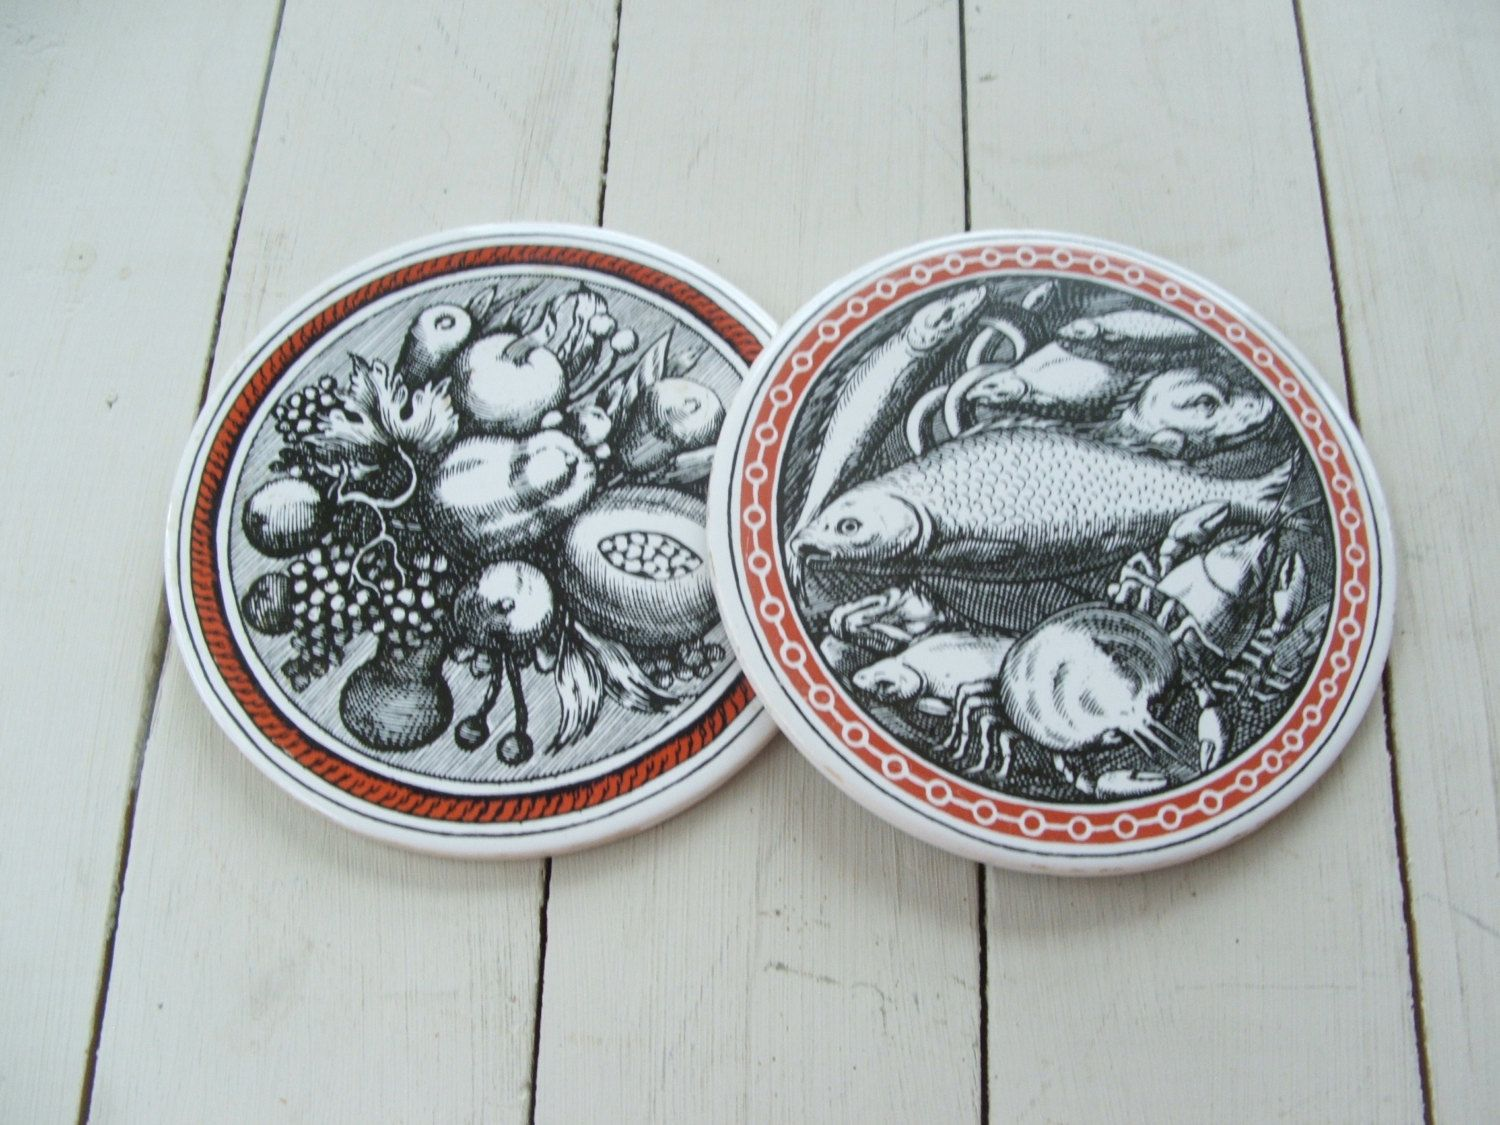 Vintage Kitchen Wall Hangings Coasters Trivets Hot Plates Ceramic ...